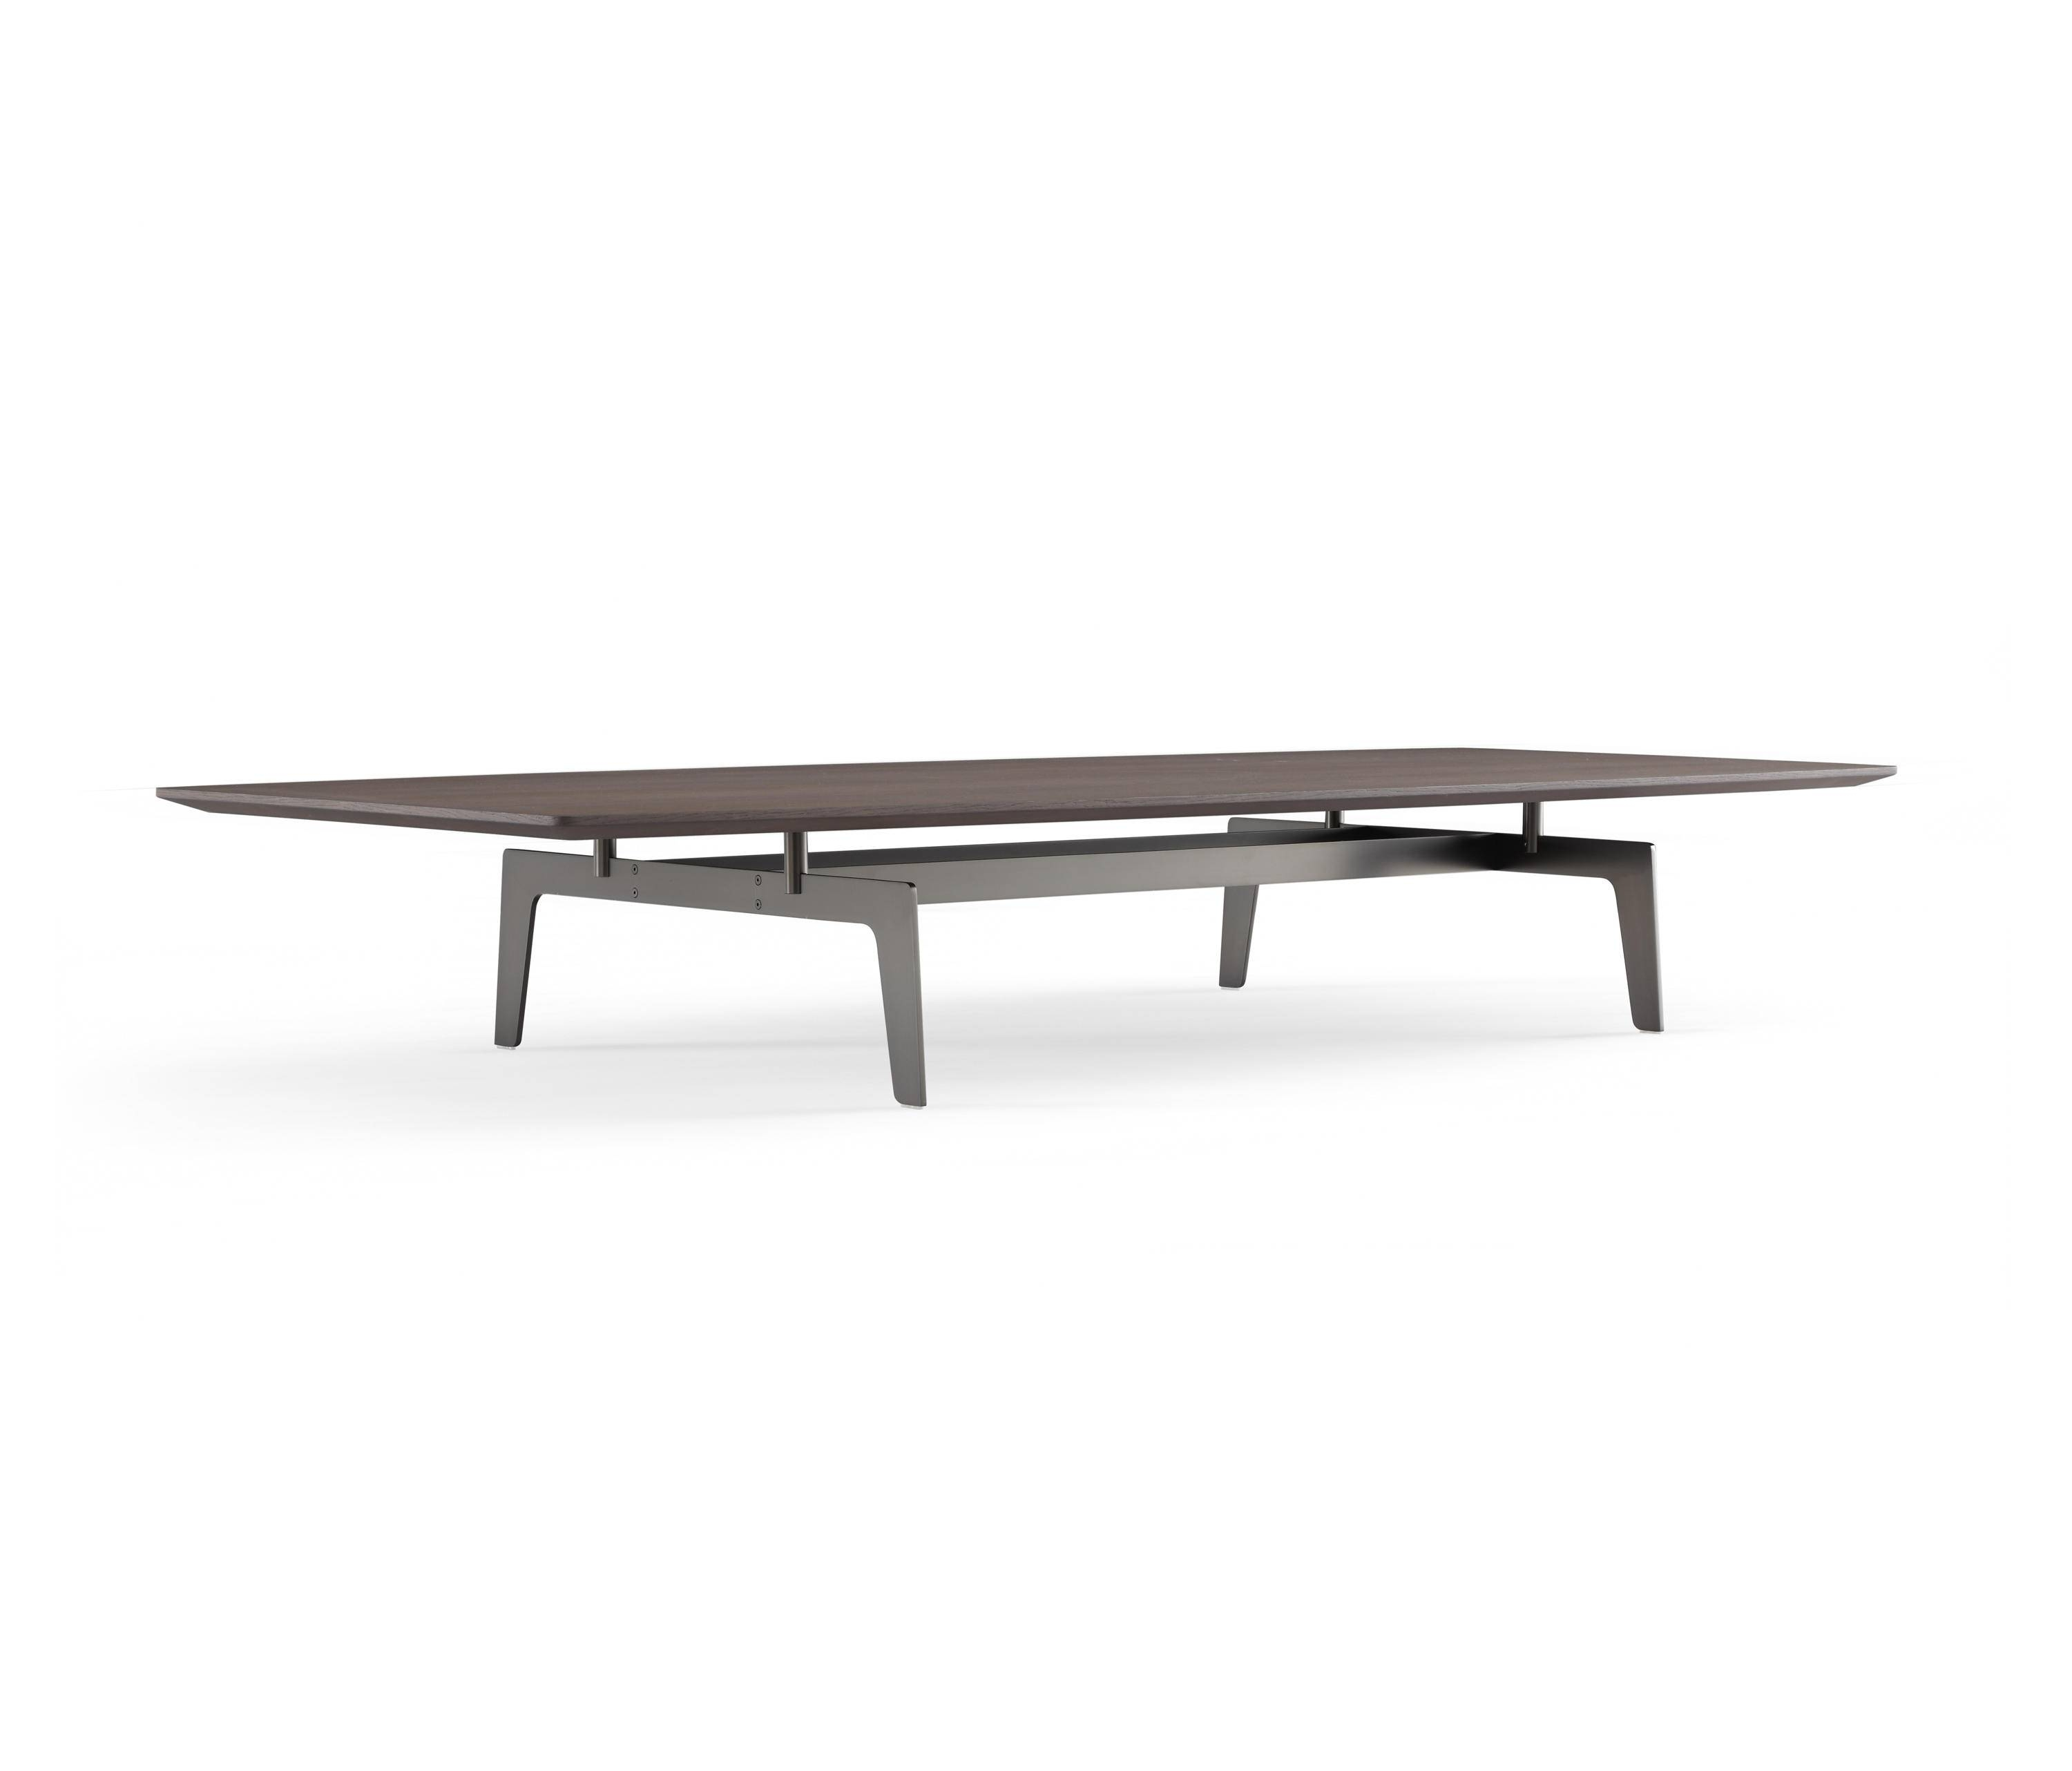 Tribeca Coffee Table - Coffee Tables From Poliform | Architonic with regard to Tribeca Coffee Tables (Image 24 of 30)